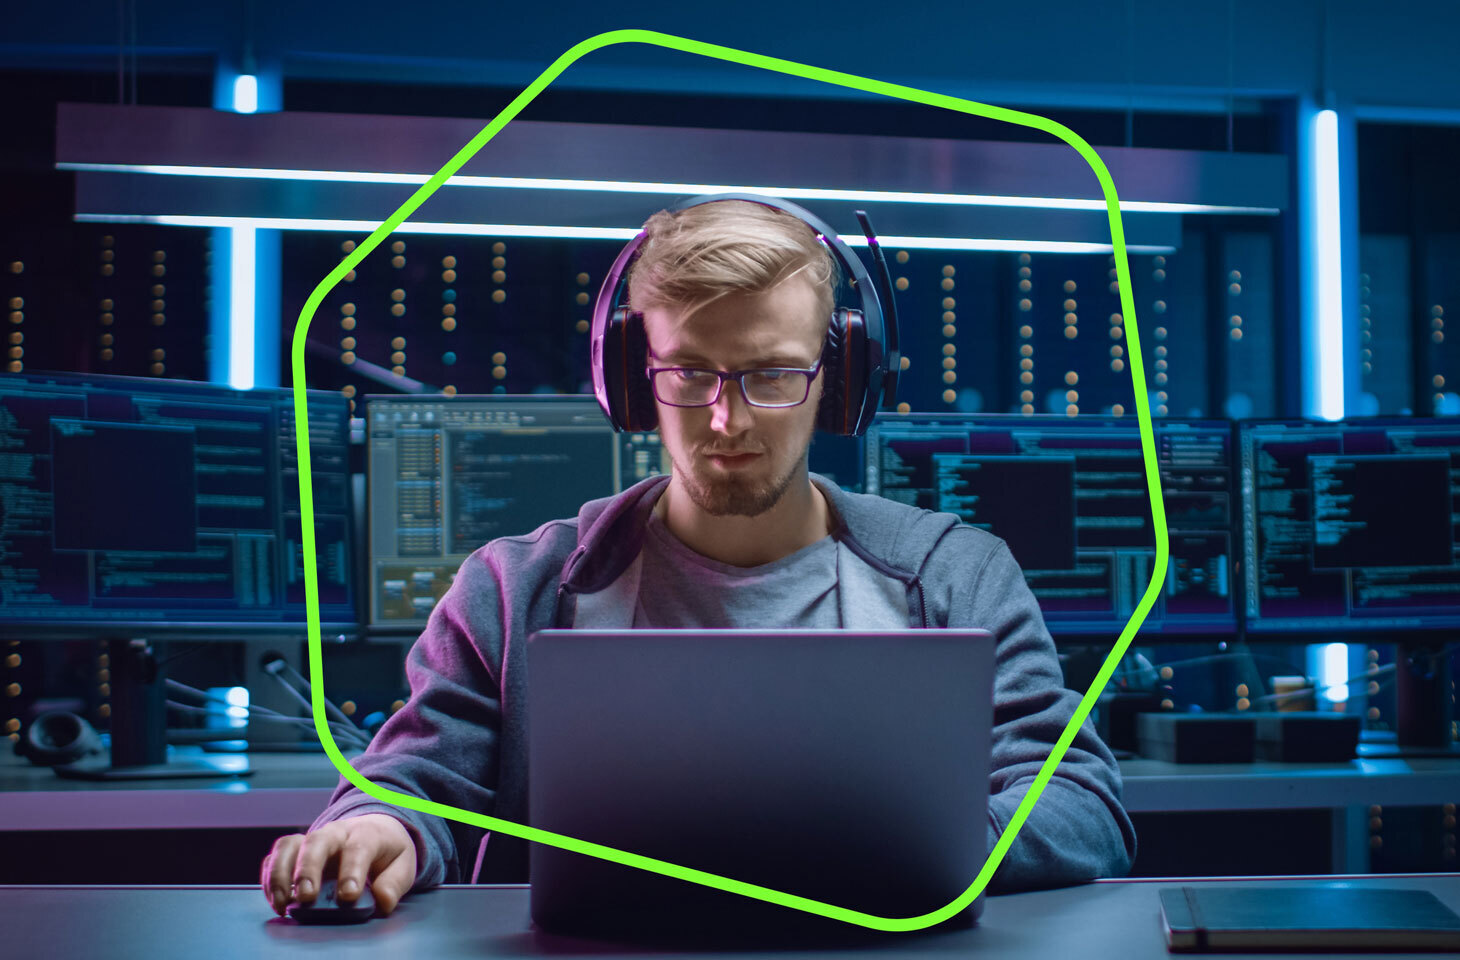 How to ask Kaspersky experts a question | Kaspersky official blog